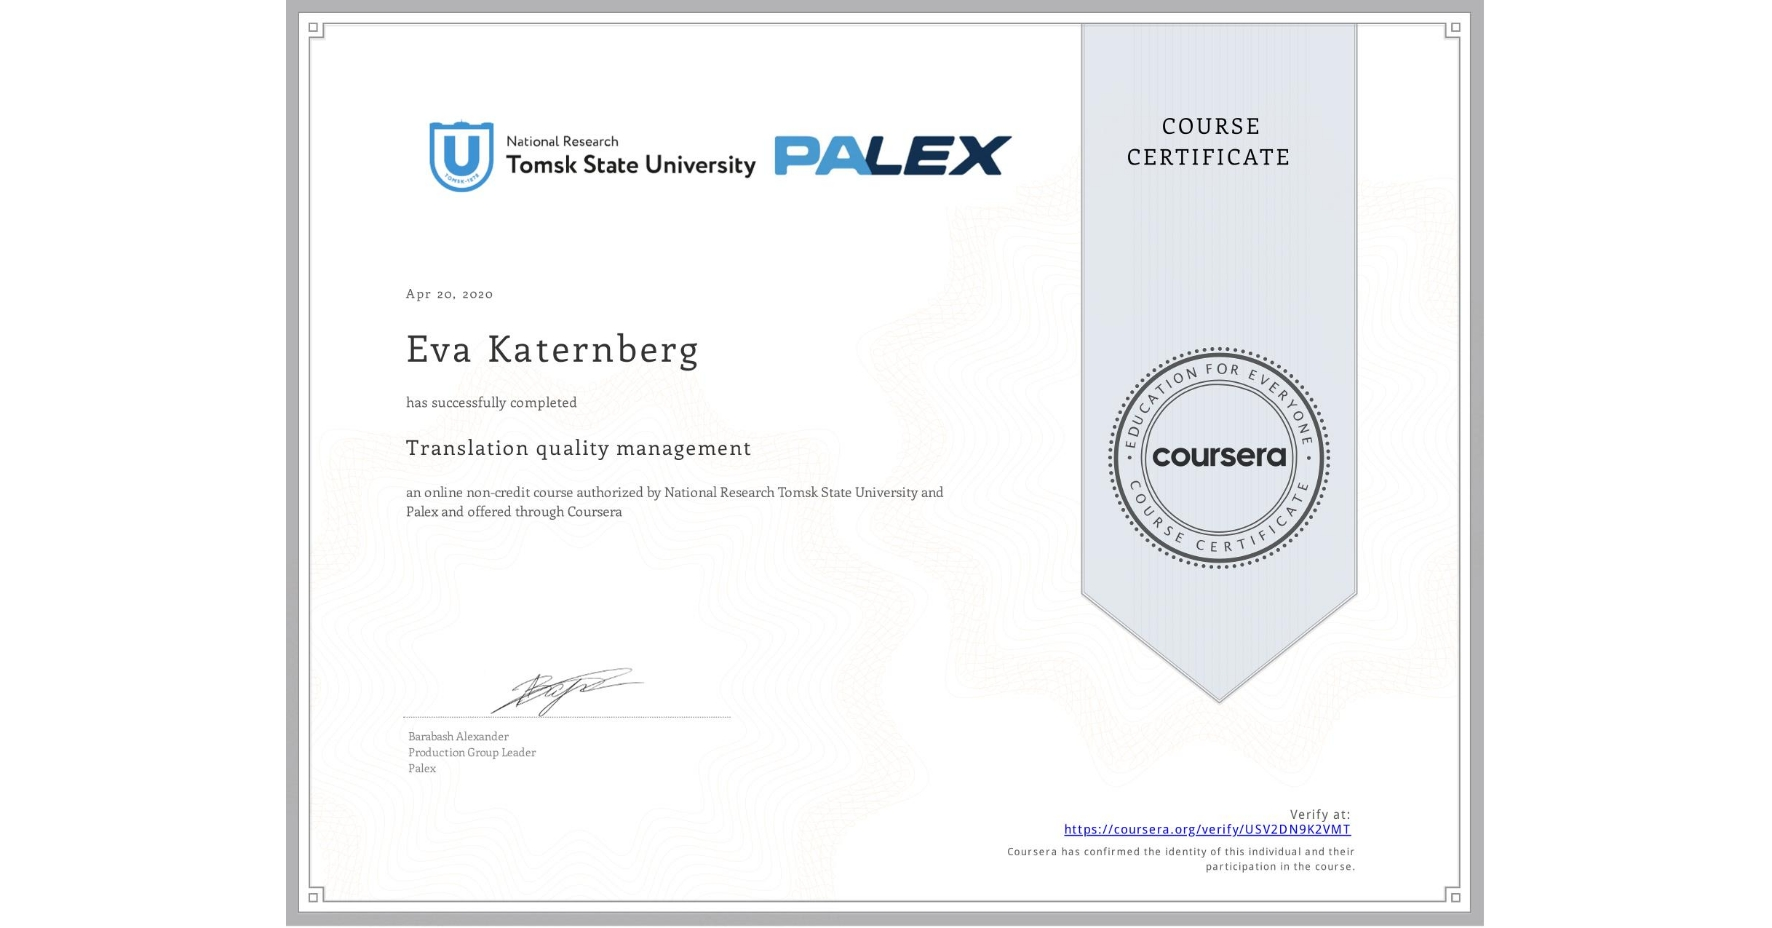 View certificate for Eva Katernberg, Translation quality management, an online non-credit course authorized by National Research Tomsk State University & Palex and offered through Coursera